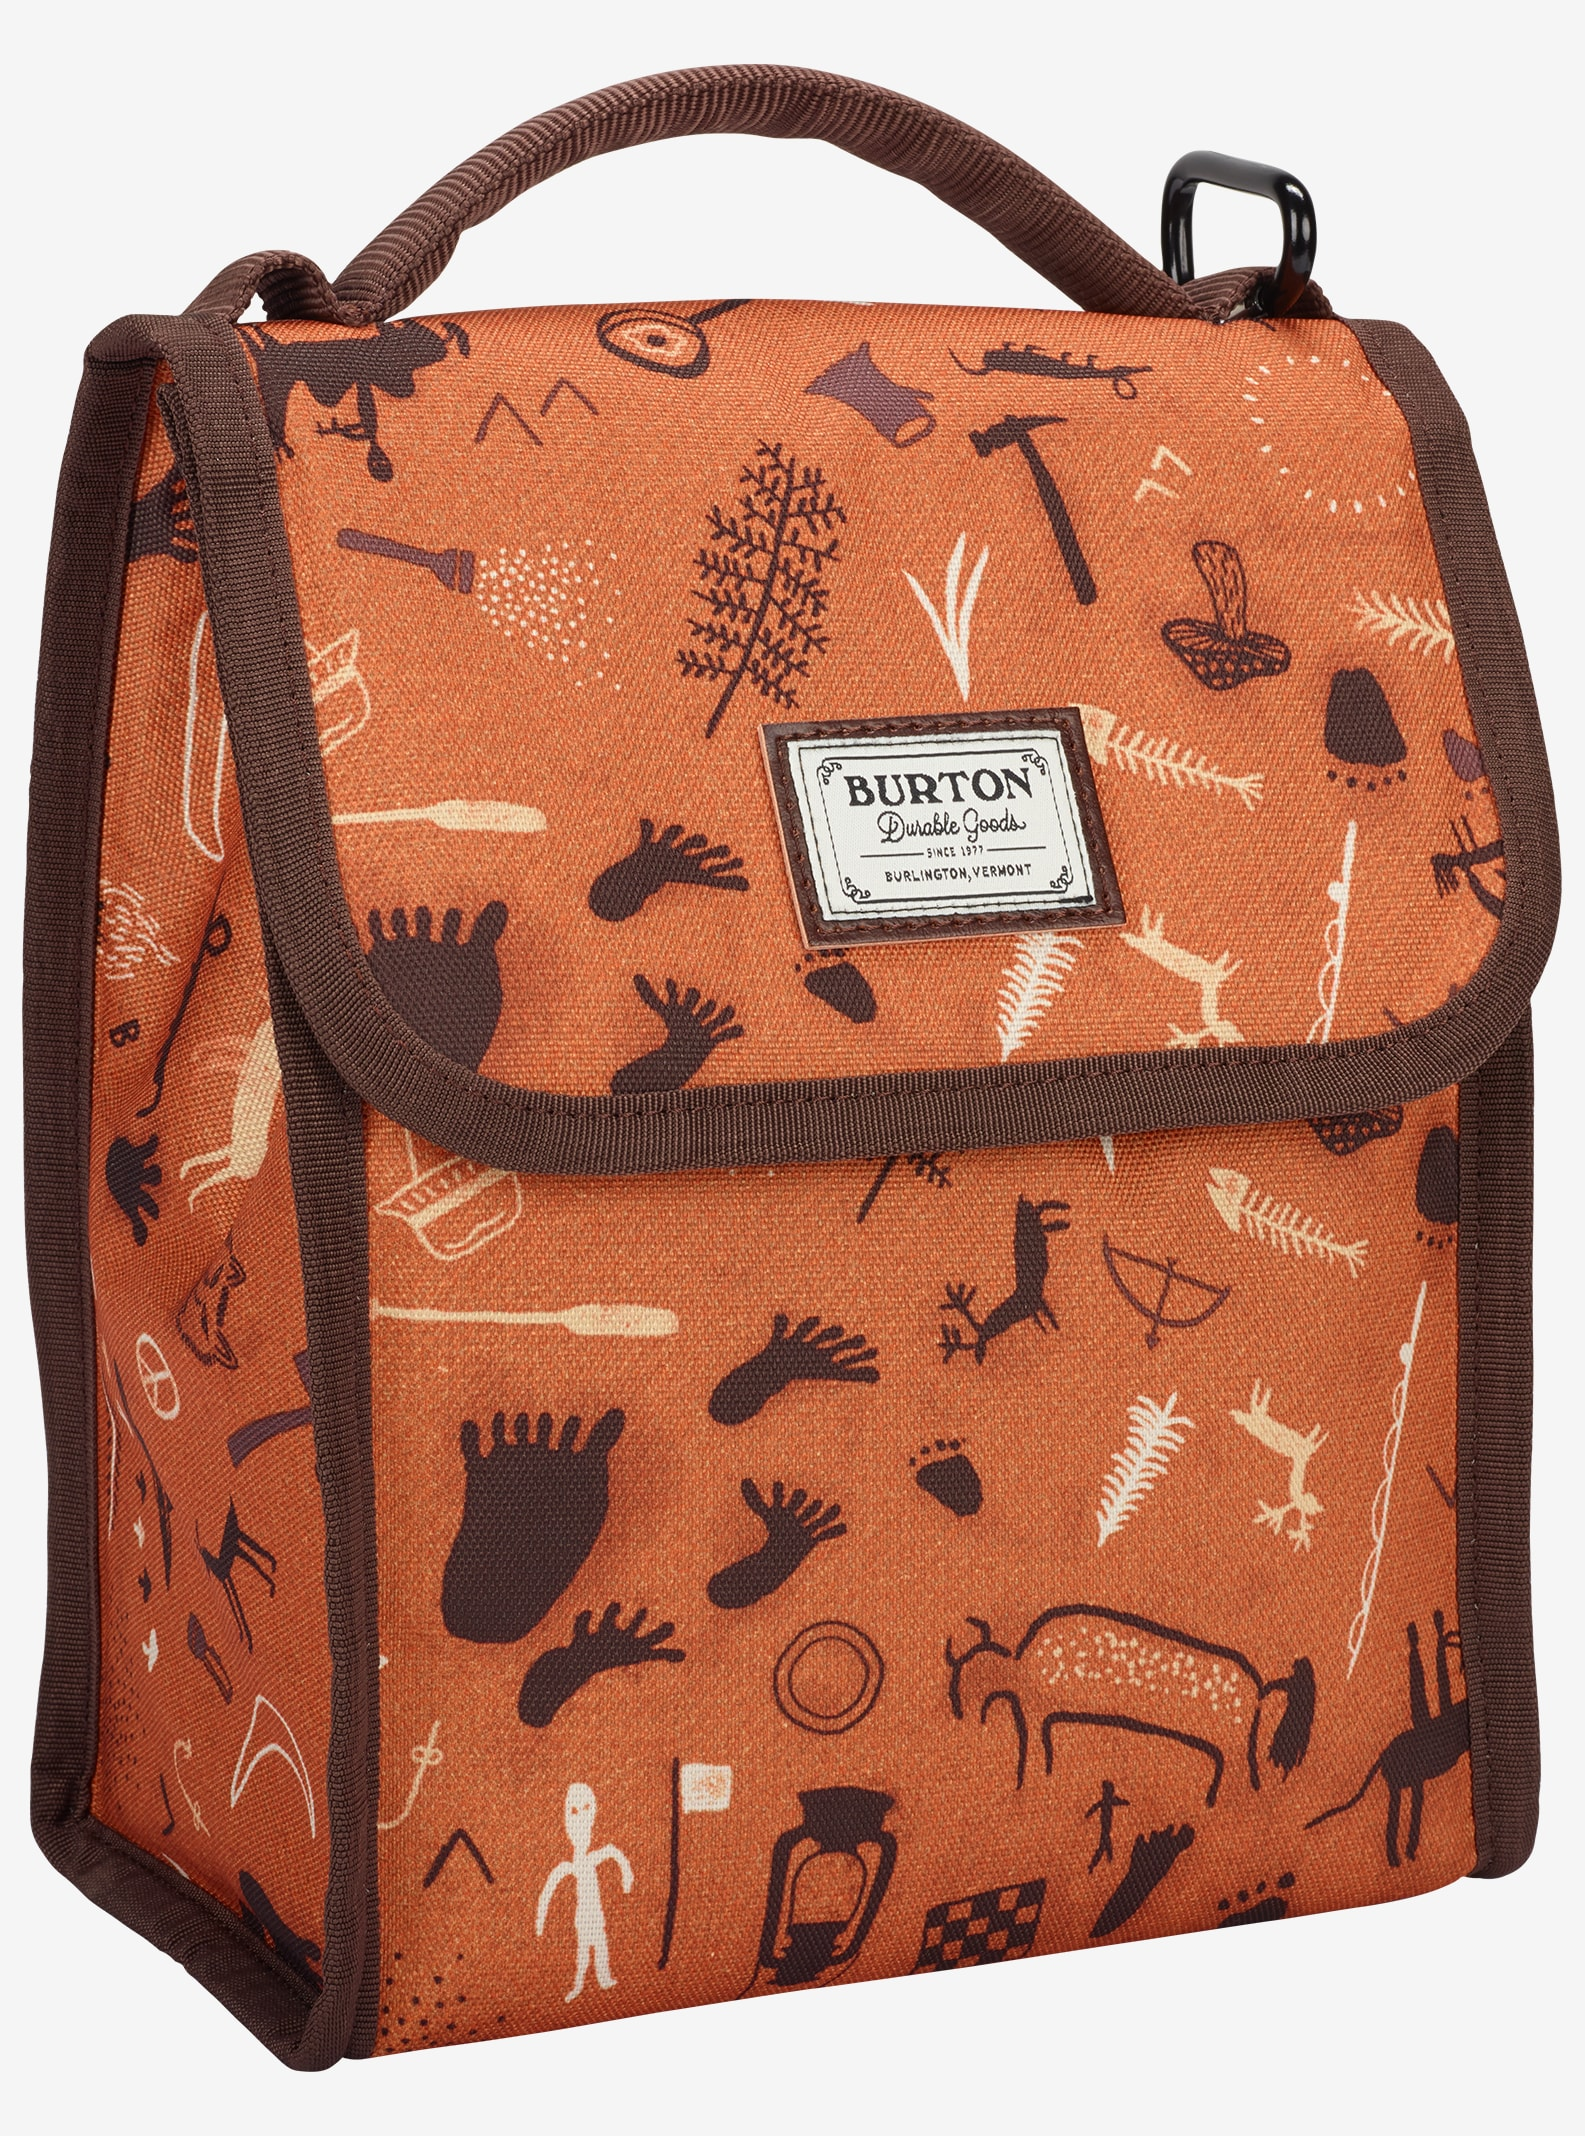 Burton Lunch Sack shown in Caveman Print